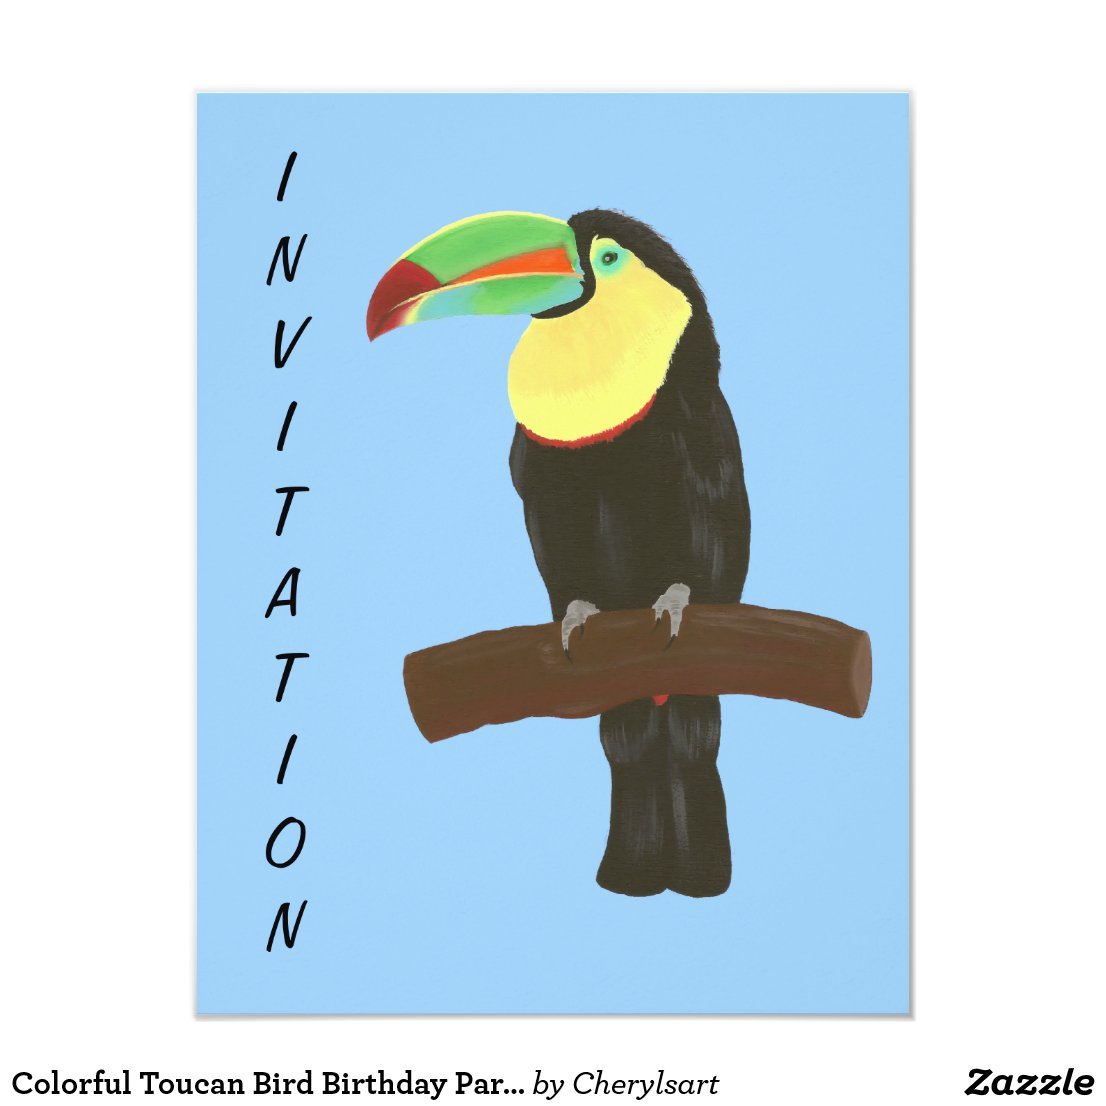 Colorful Toucan Bird Birthday Party Invitations